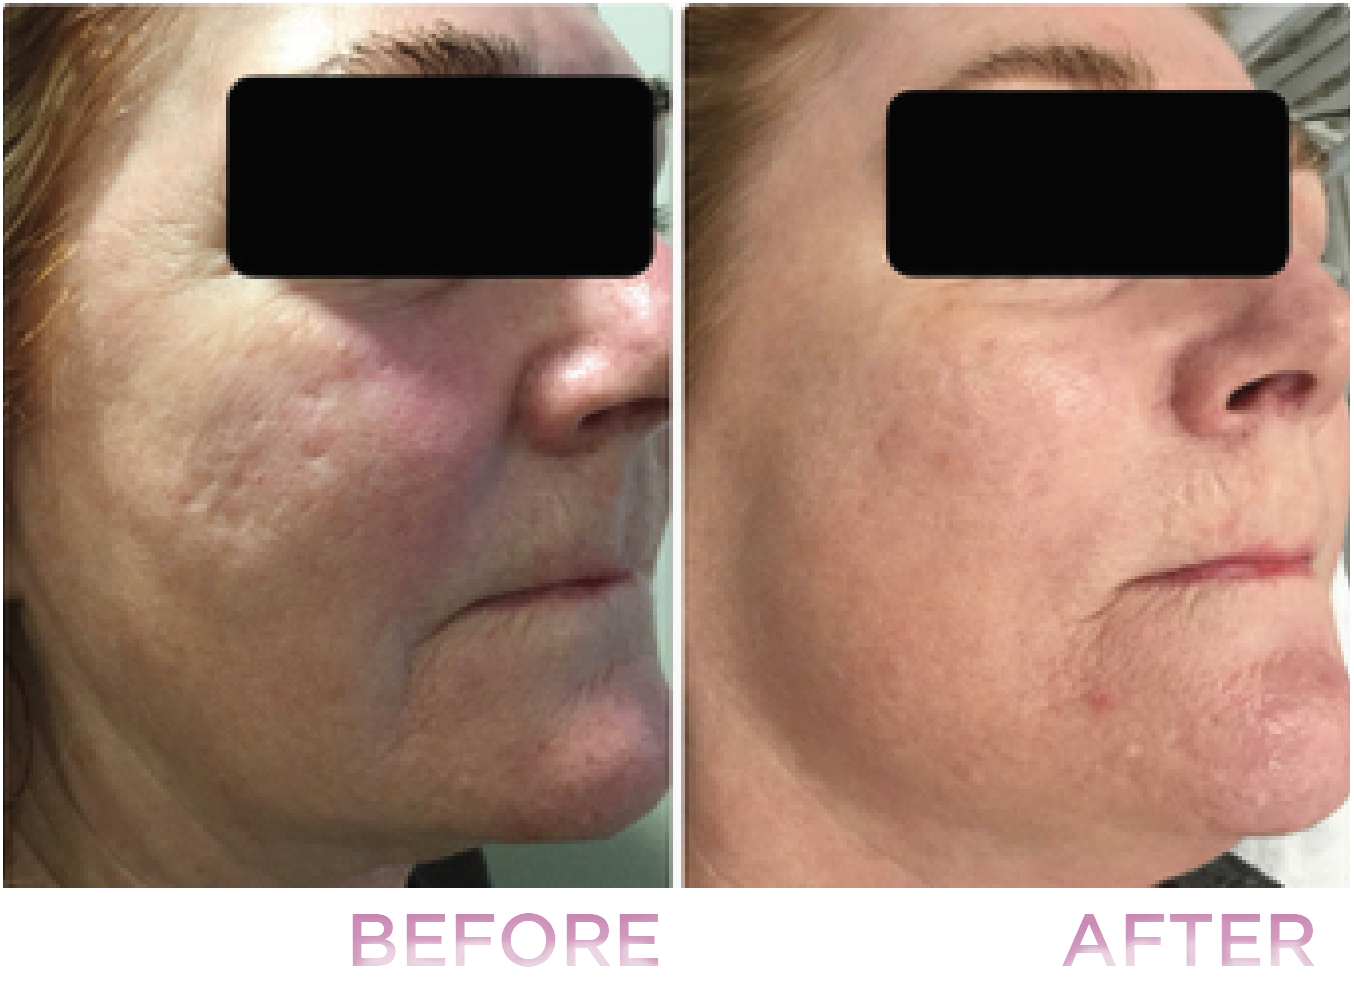 Before and after picture. Pictures were taken after two Fractional Laser Skin Resurfacing Treatments.